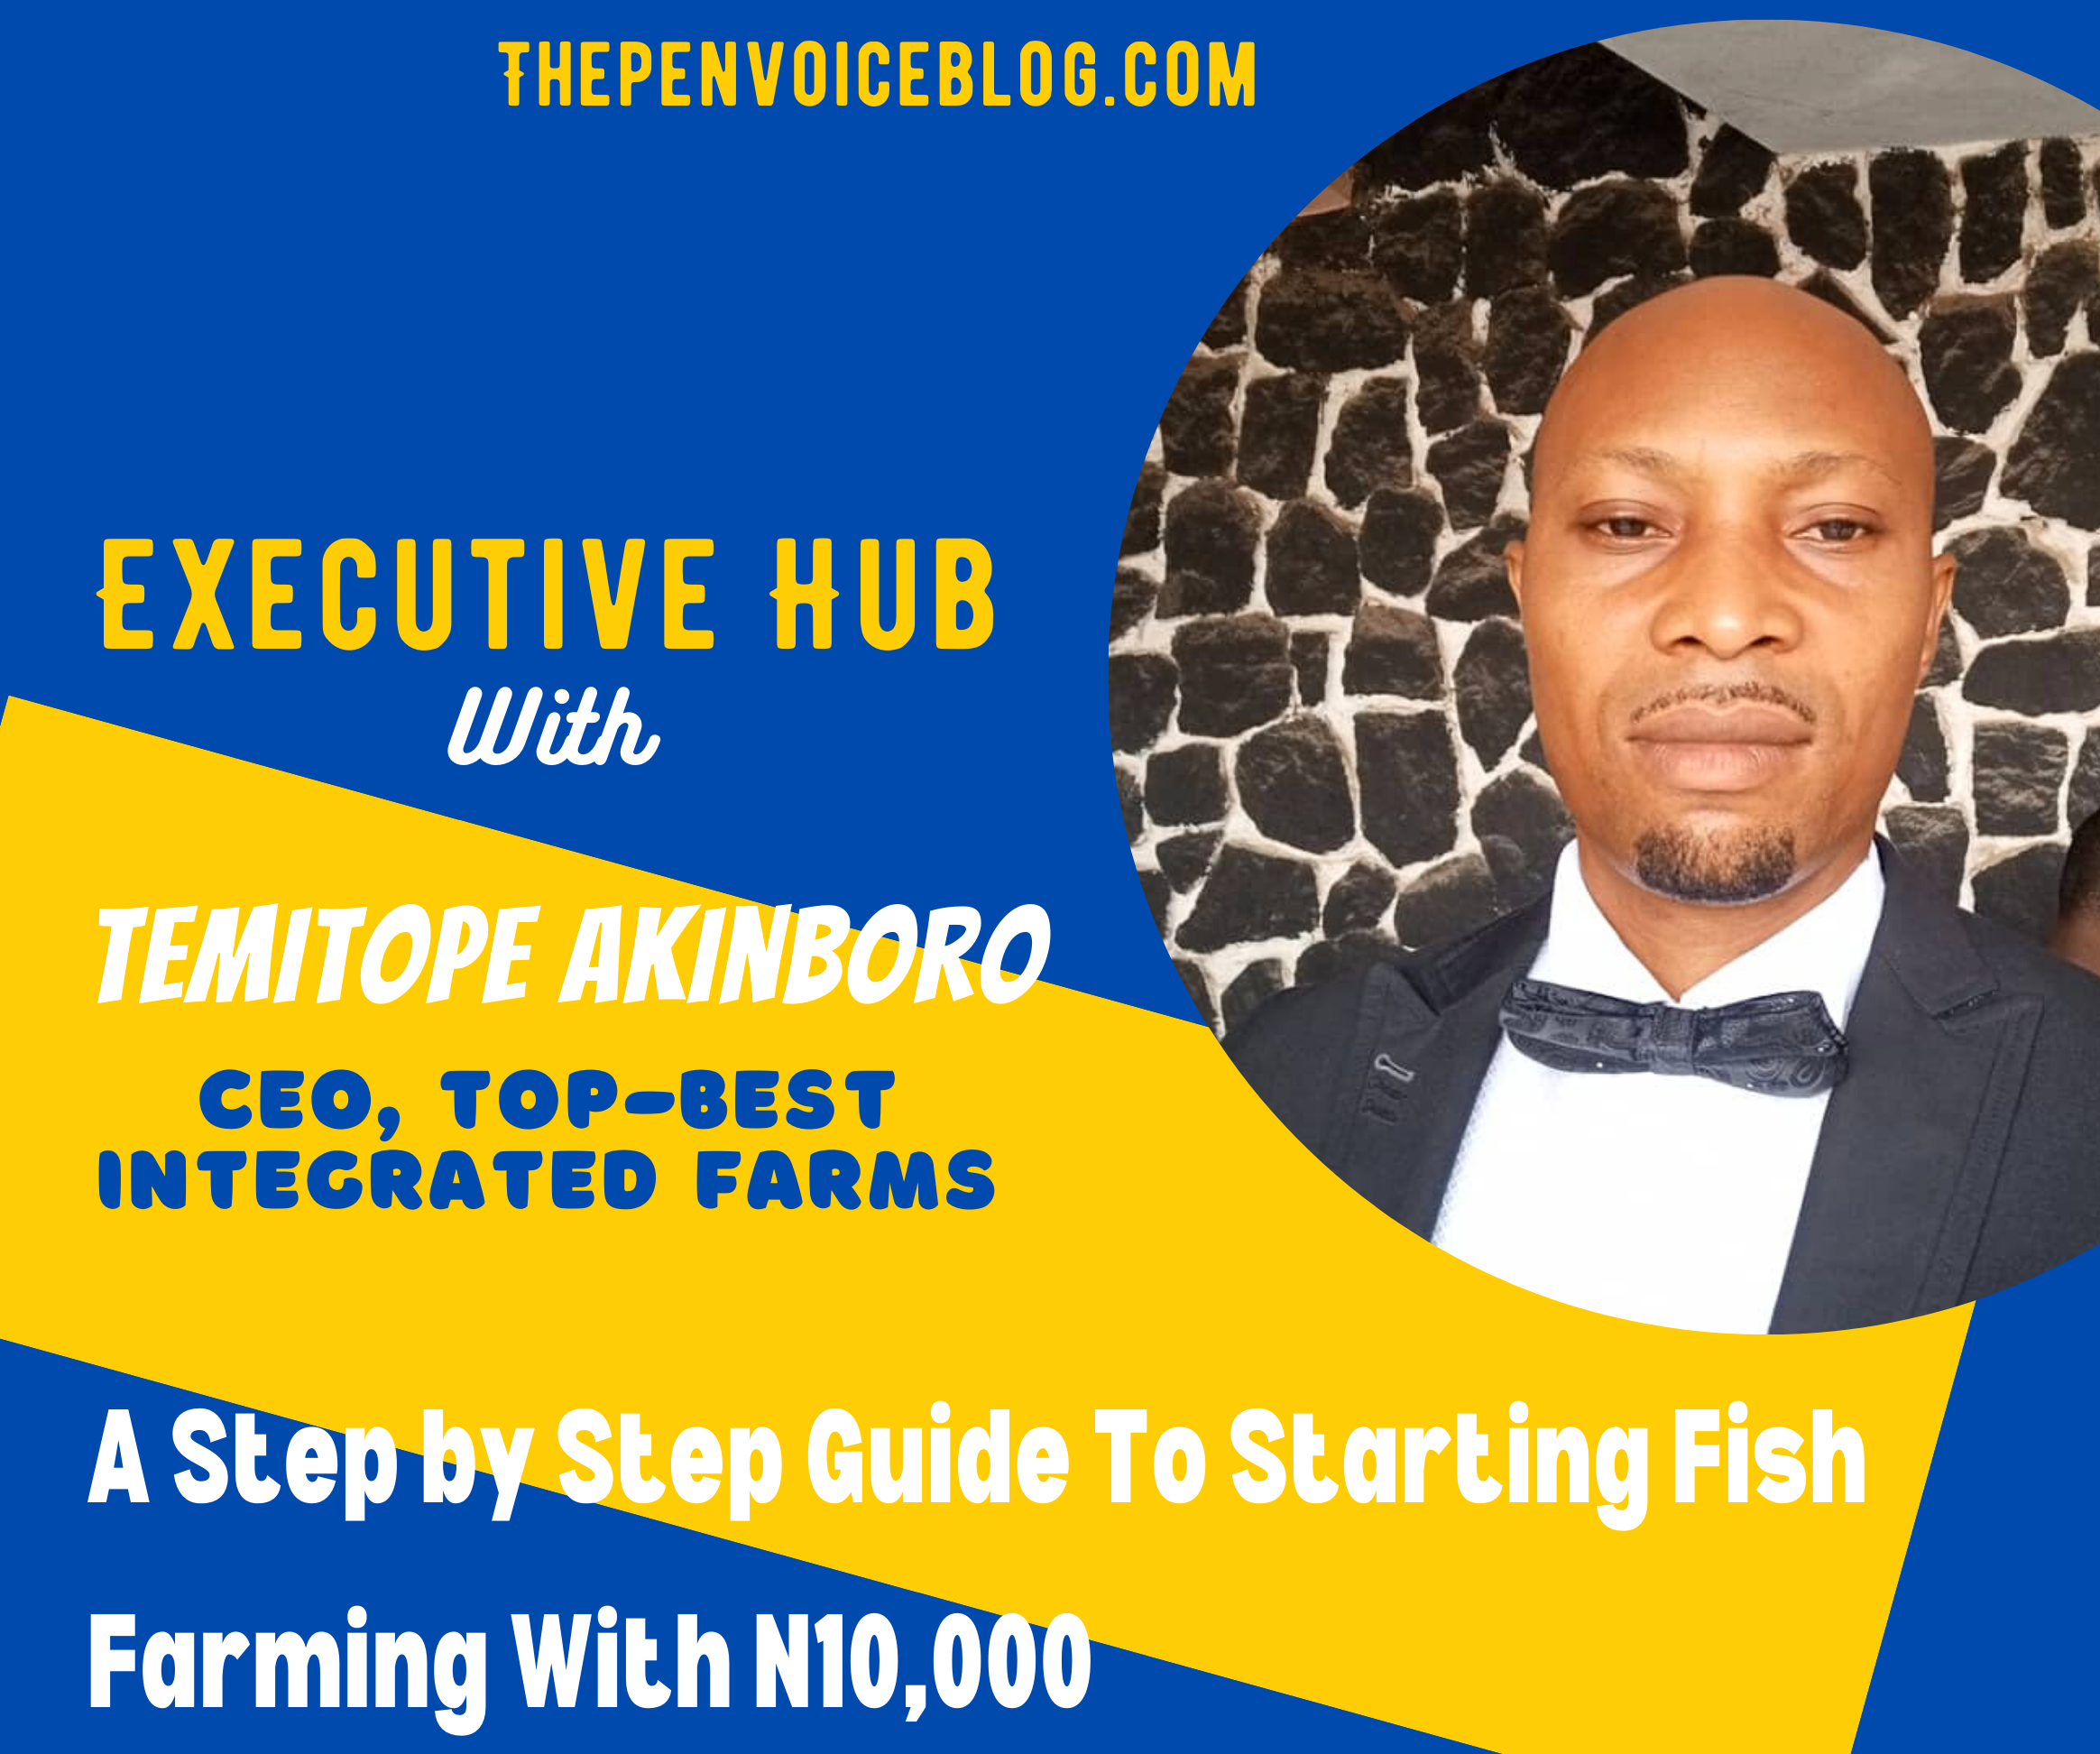 Executive Hub: A Step by Step Guide To Starting Fish Farming With N10,000 – CEO, Top-Best Integrated Farms, Temitope Akinboro